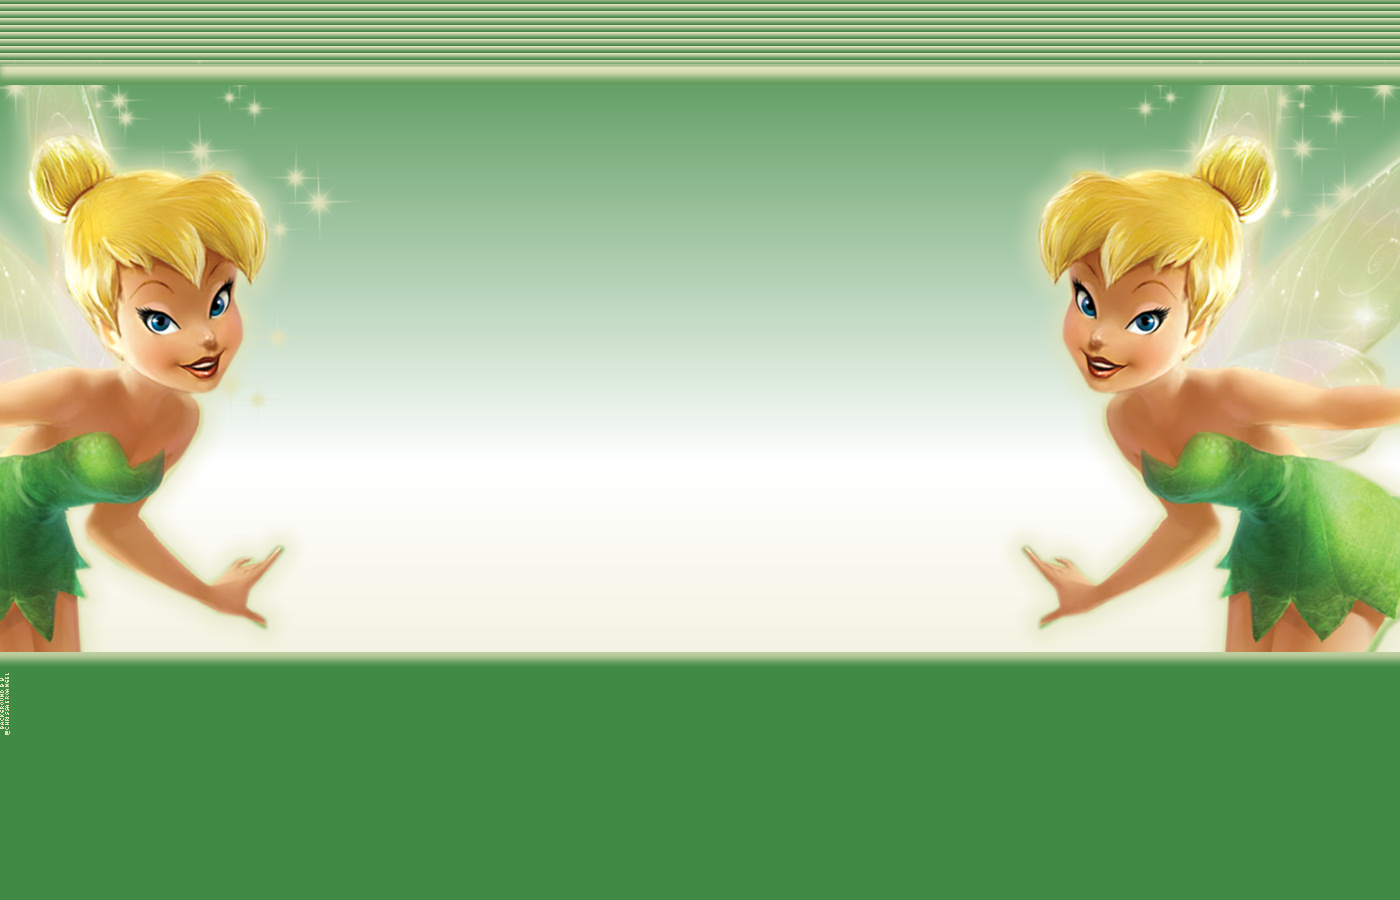 theme wallpaper tinker bell - photo #4